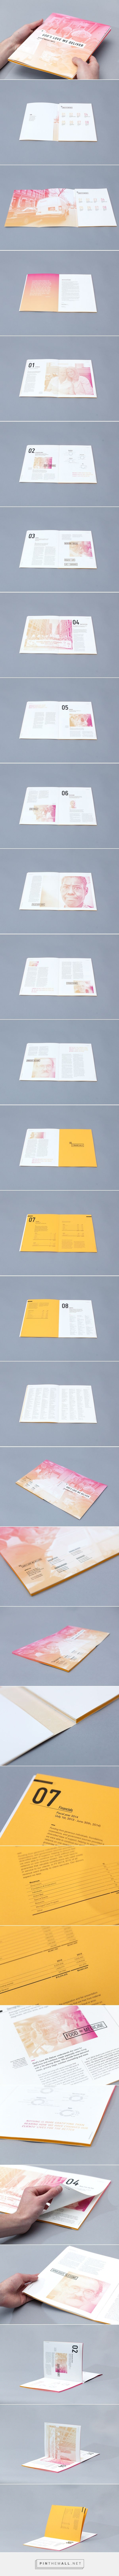 God's Love We Deliver | Annual Report on Behance - created via http://pinthemall.net